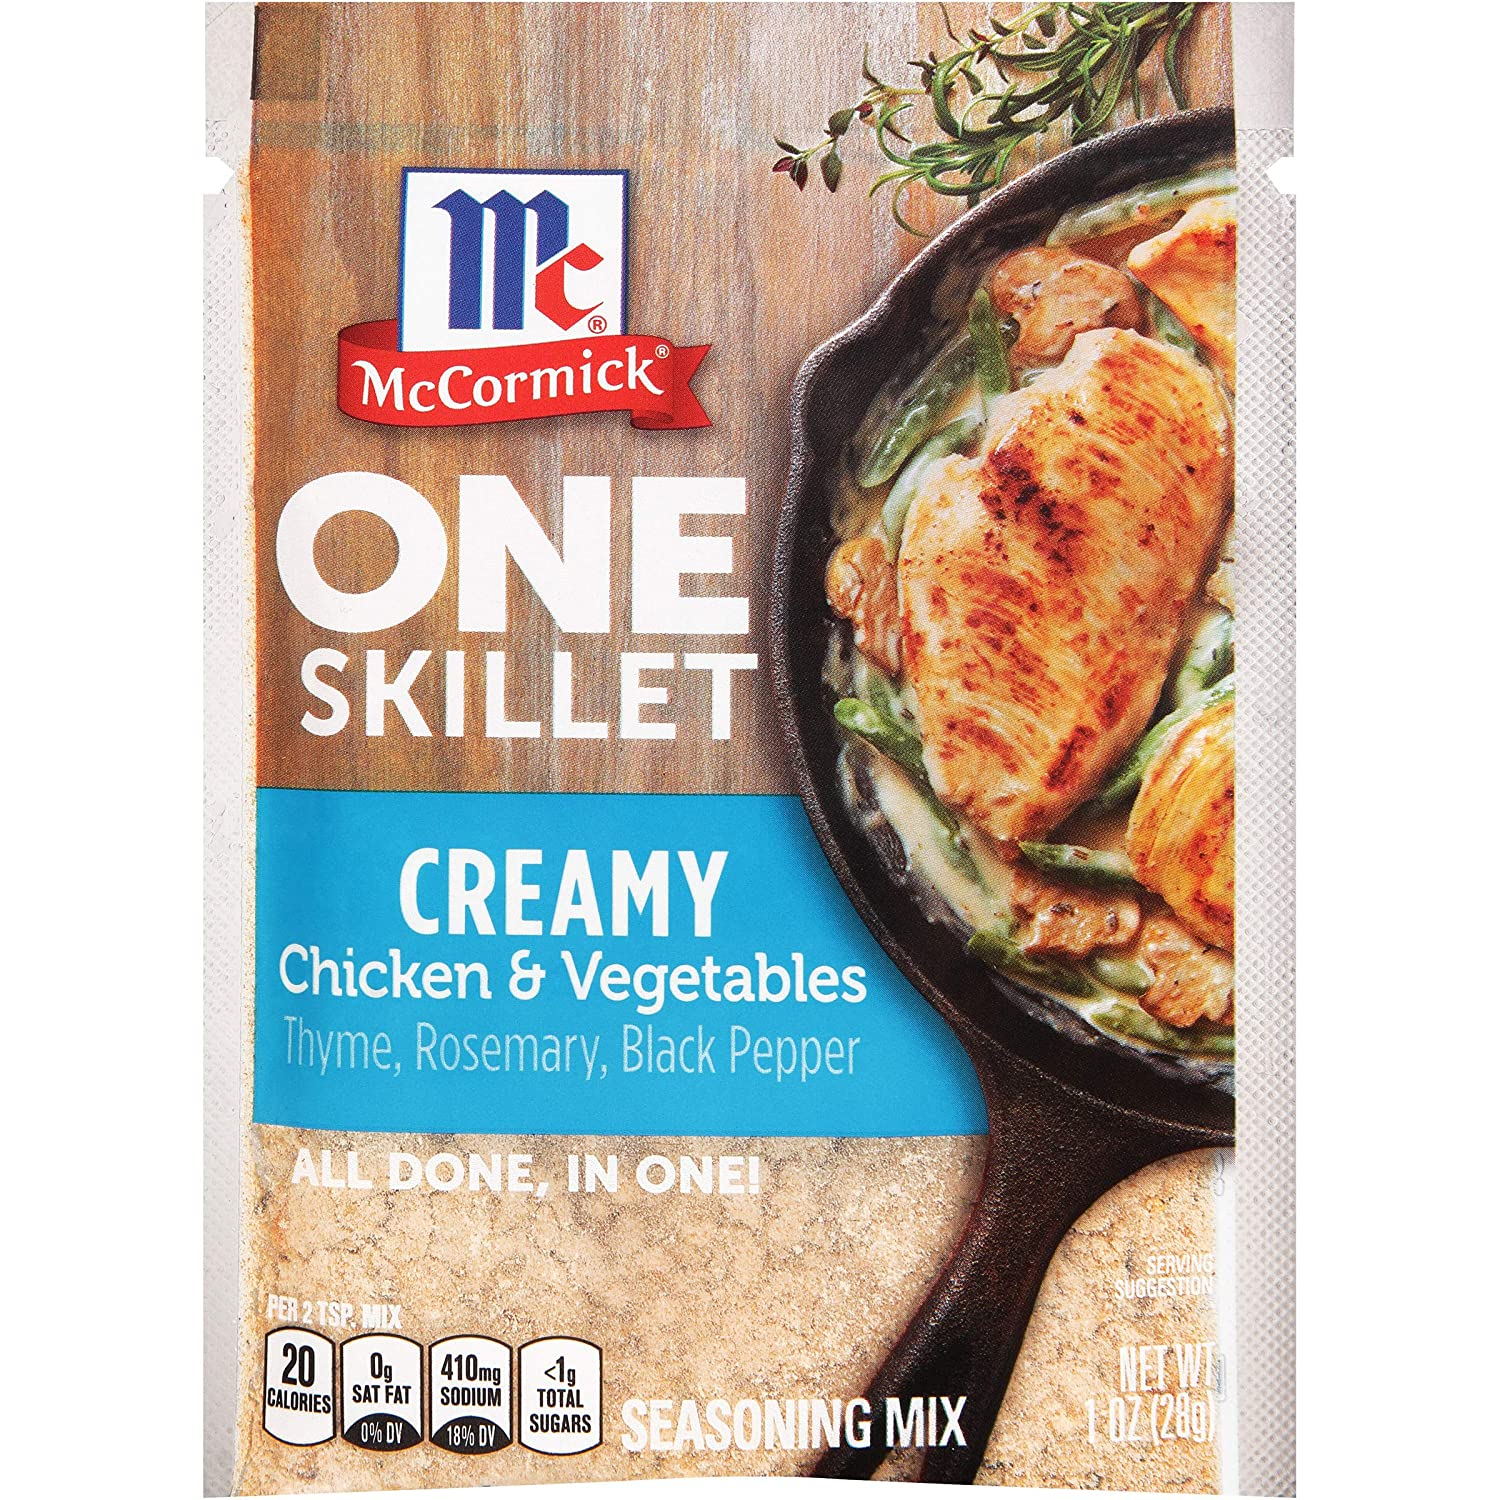 McCormick ONE Skillet Creamy Chicken & Vegetables Seasoning Mix, 1 oz (Pack of 12)